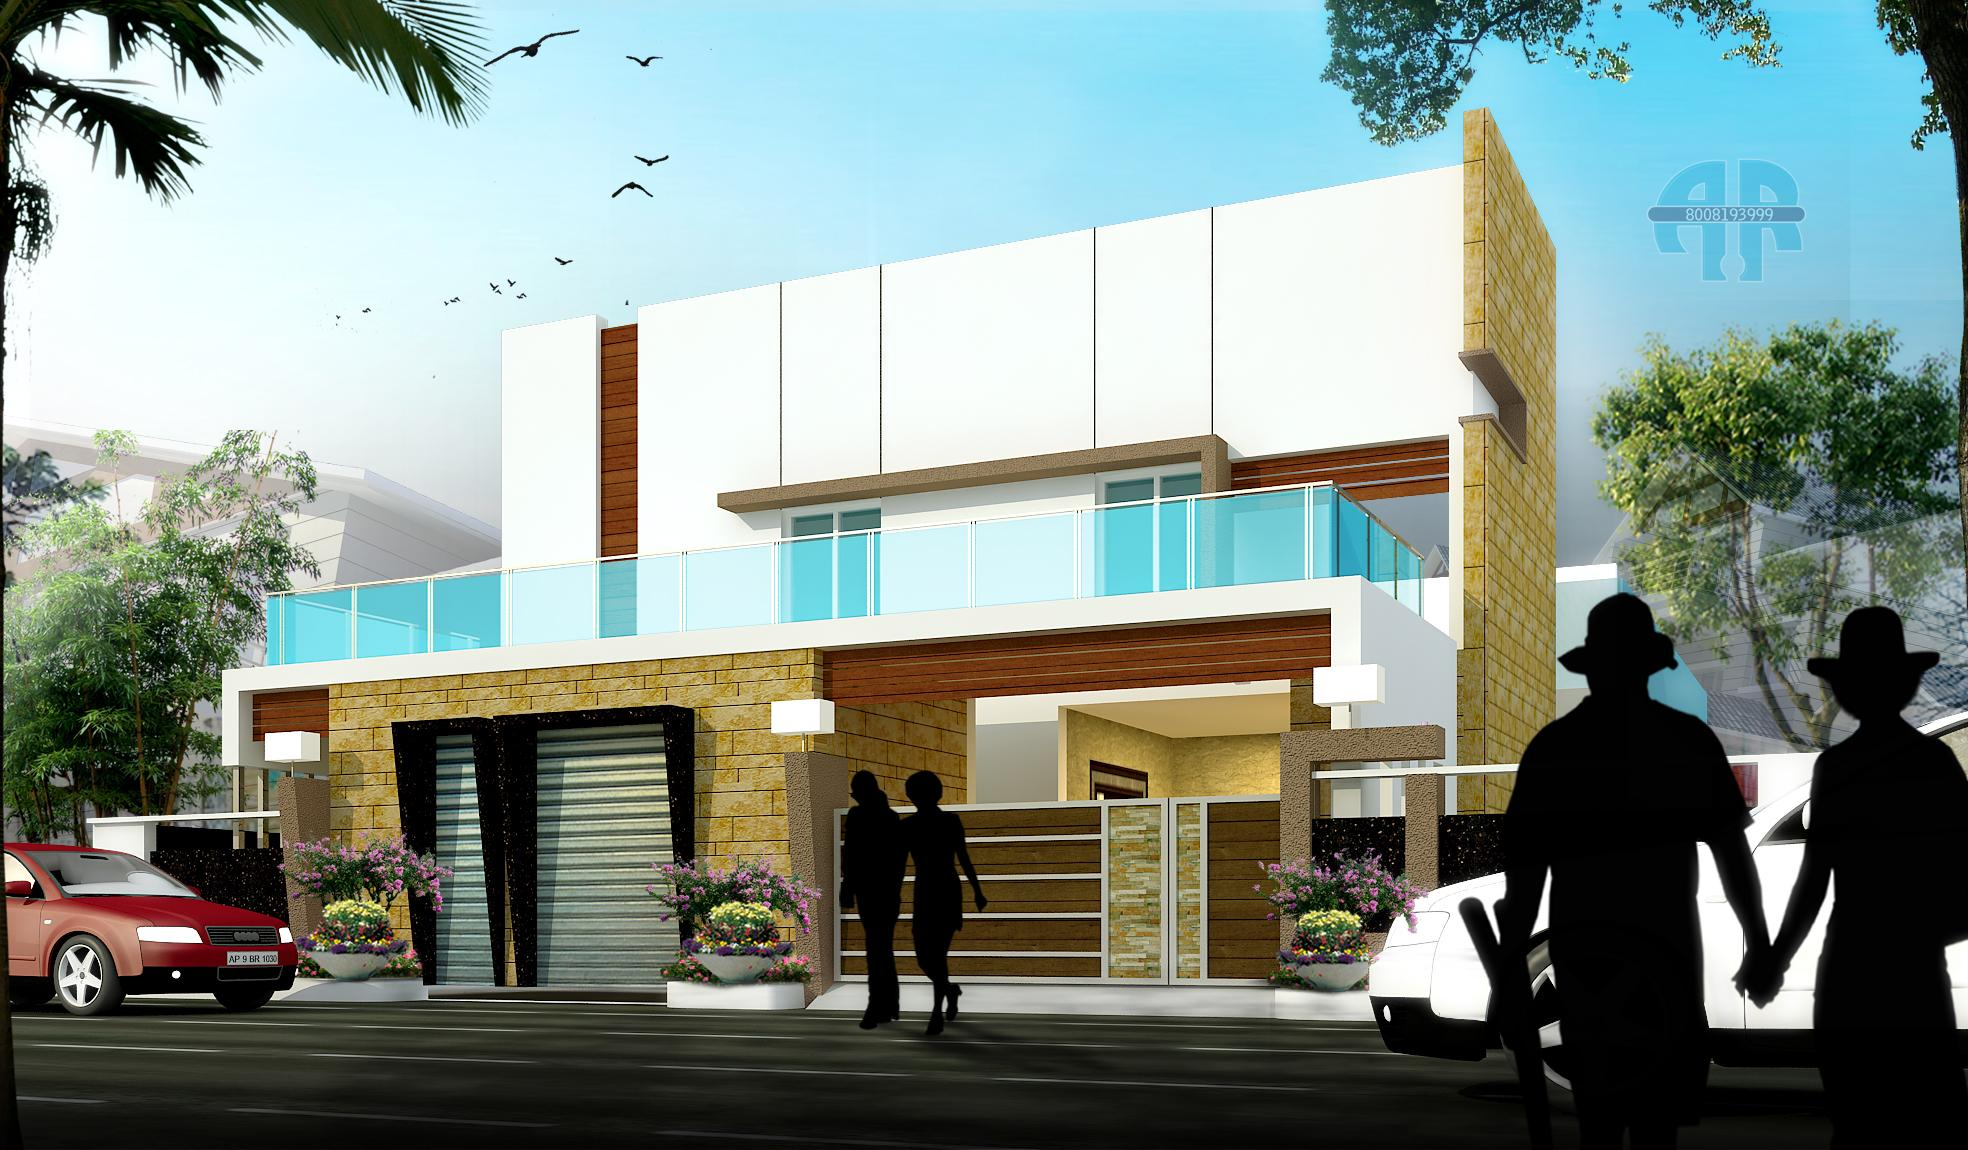 ar-concepts-madhinaguda-hyderabad-residential-elevation-image